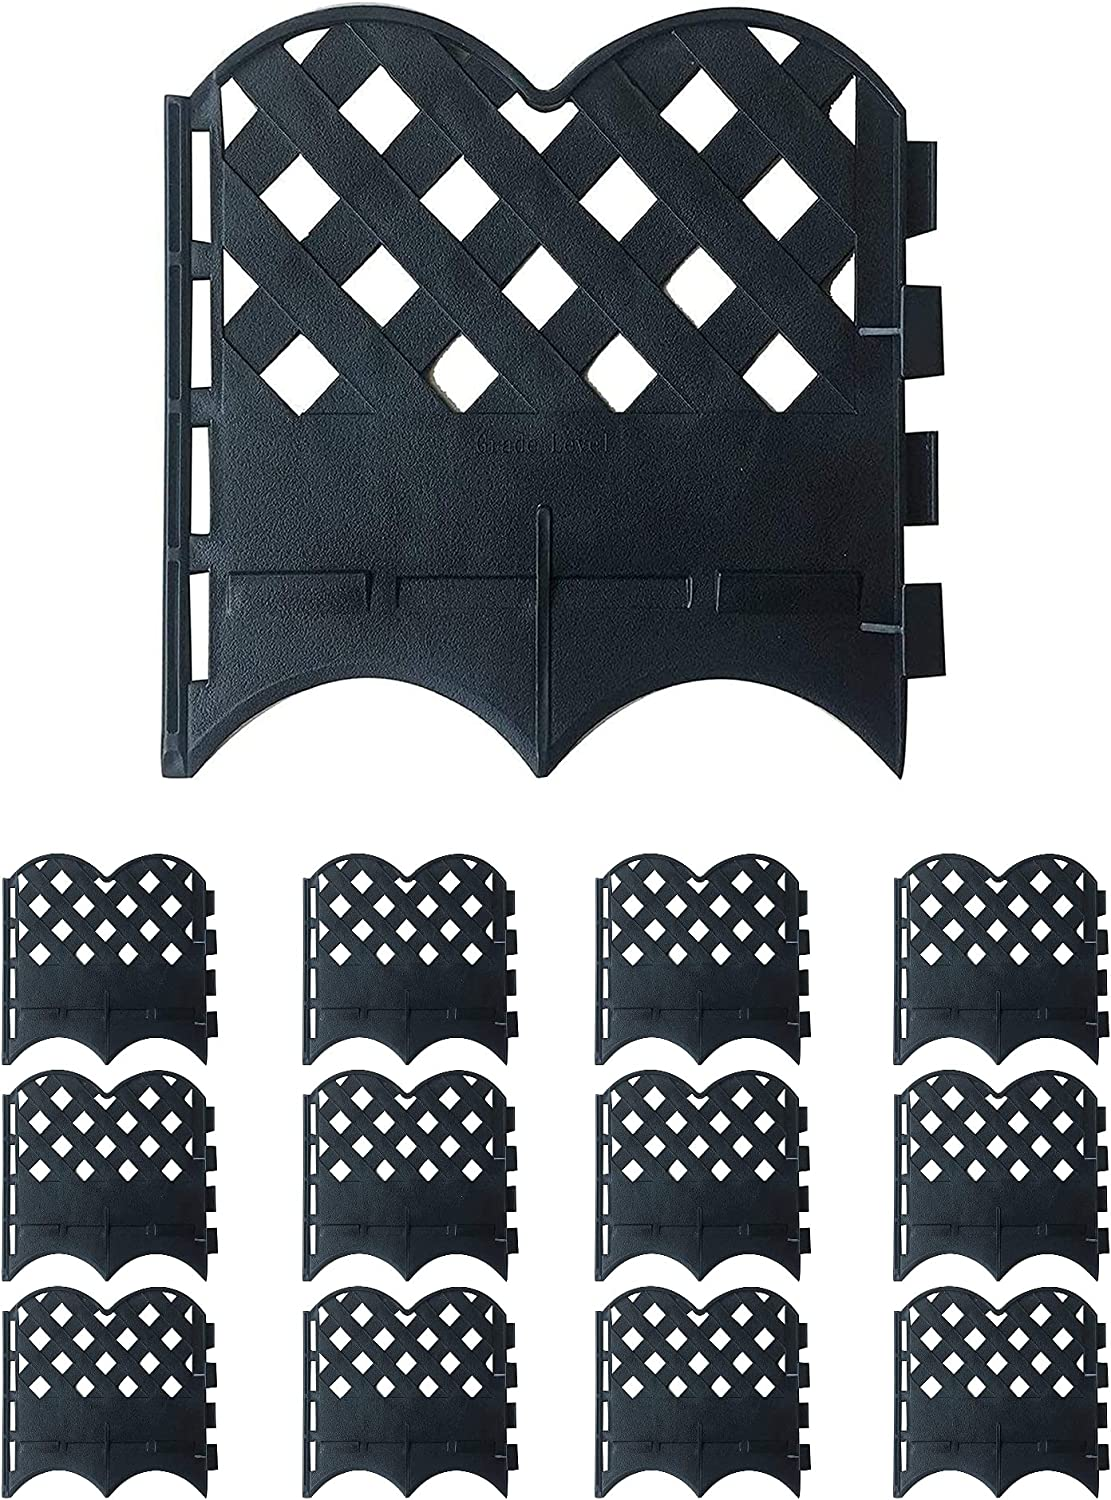 Abba Patio 12 Sections Garden Recycled Plastic Landscape Border No-Dig Flexible Lawn Edging Grid Style Decorative Fence, 6.4